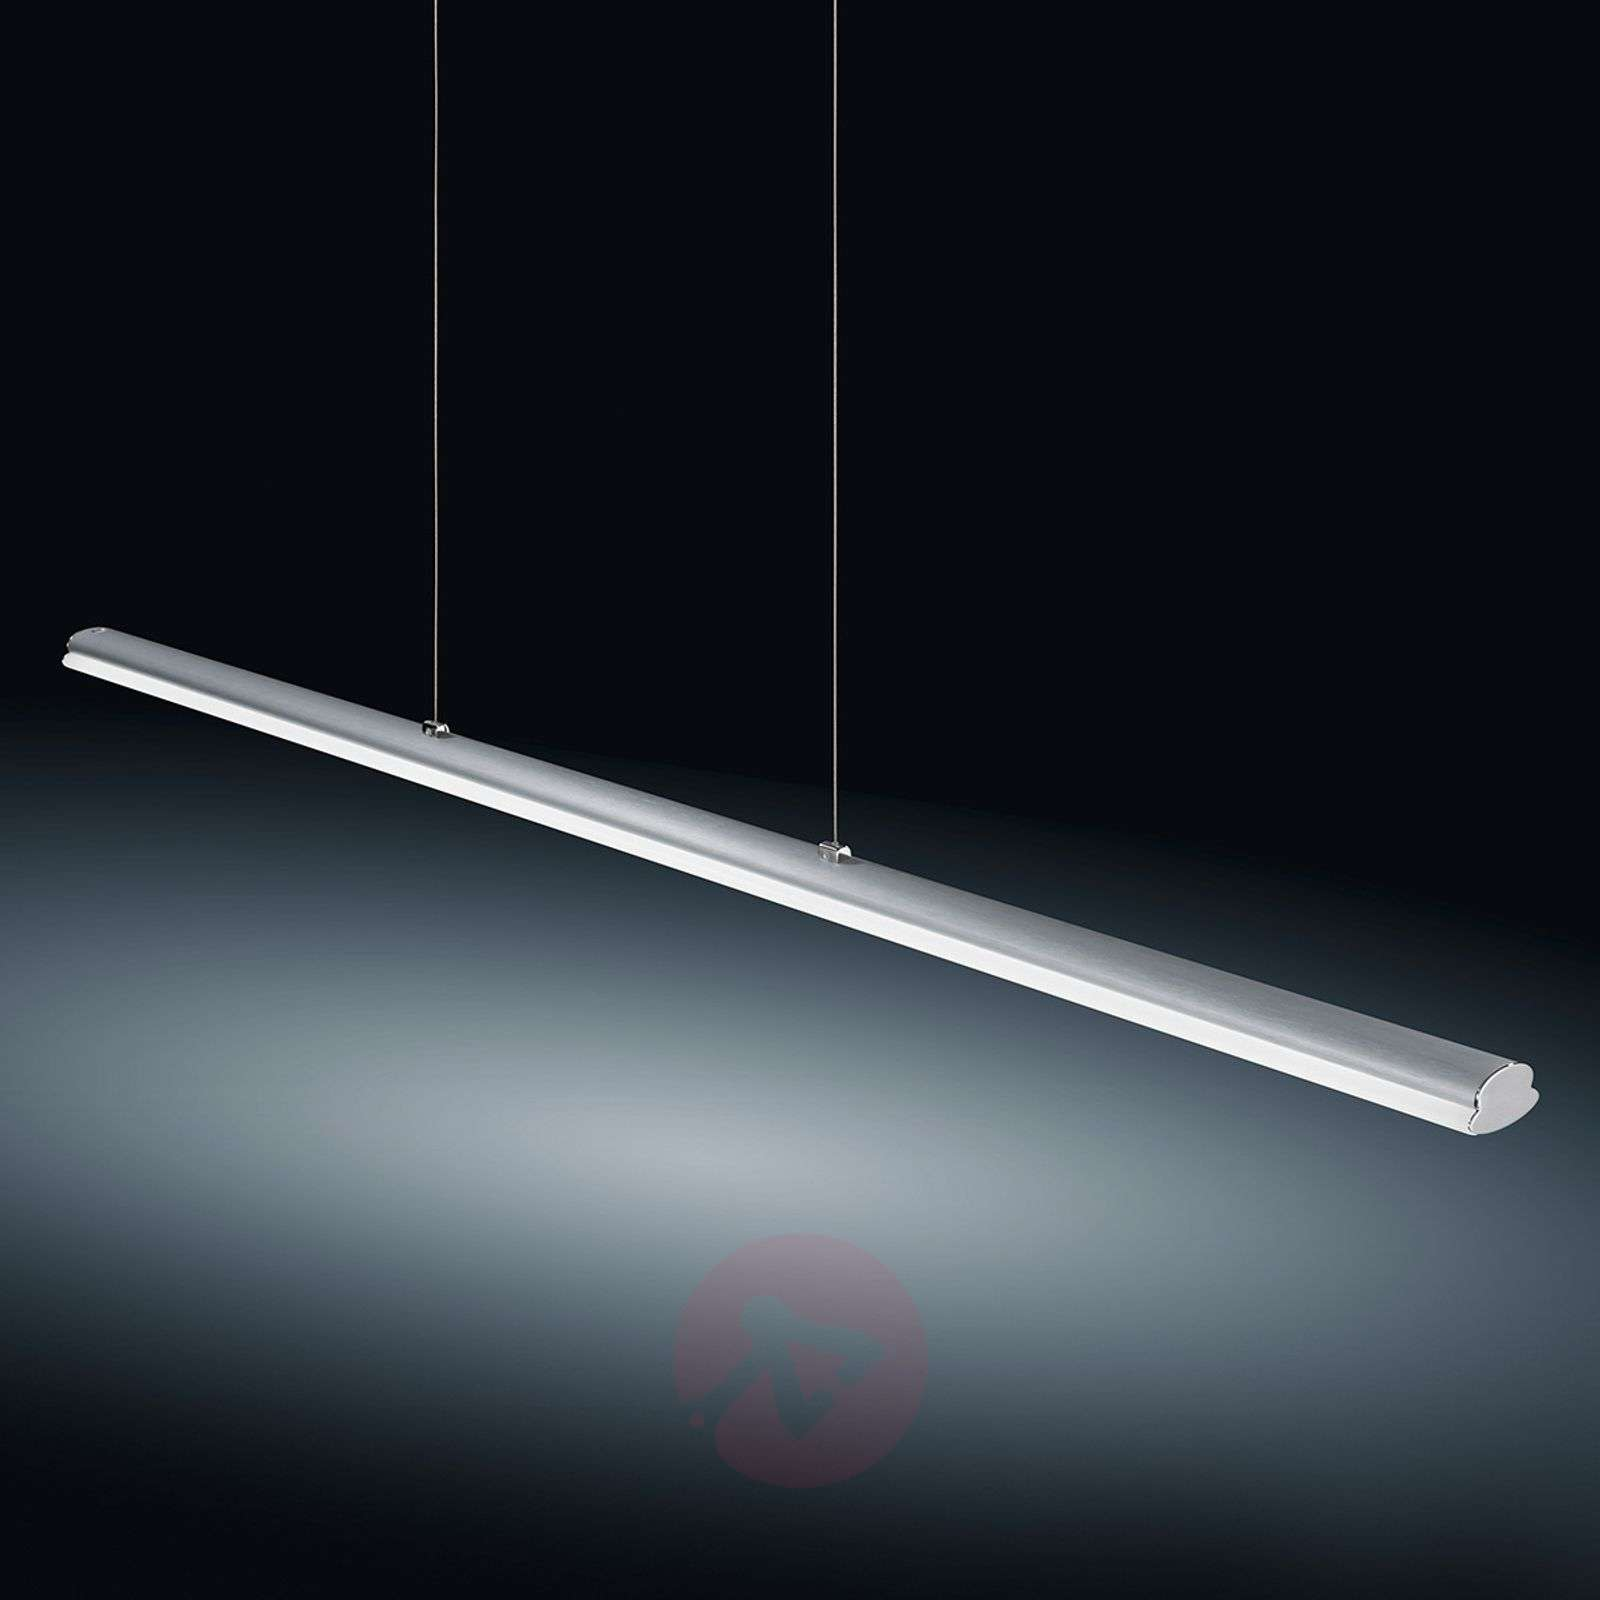 Suspension LED Venta nickel mat, 116,5 cm, 22 W-4516407-01